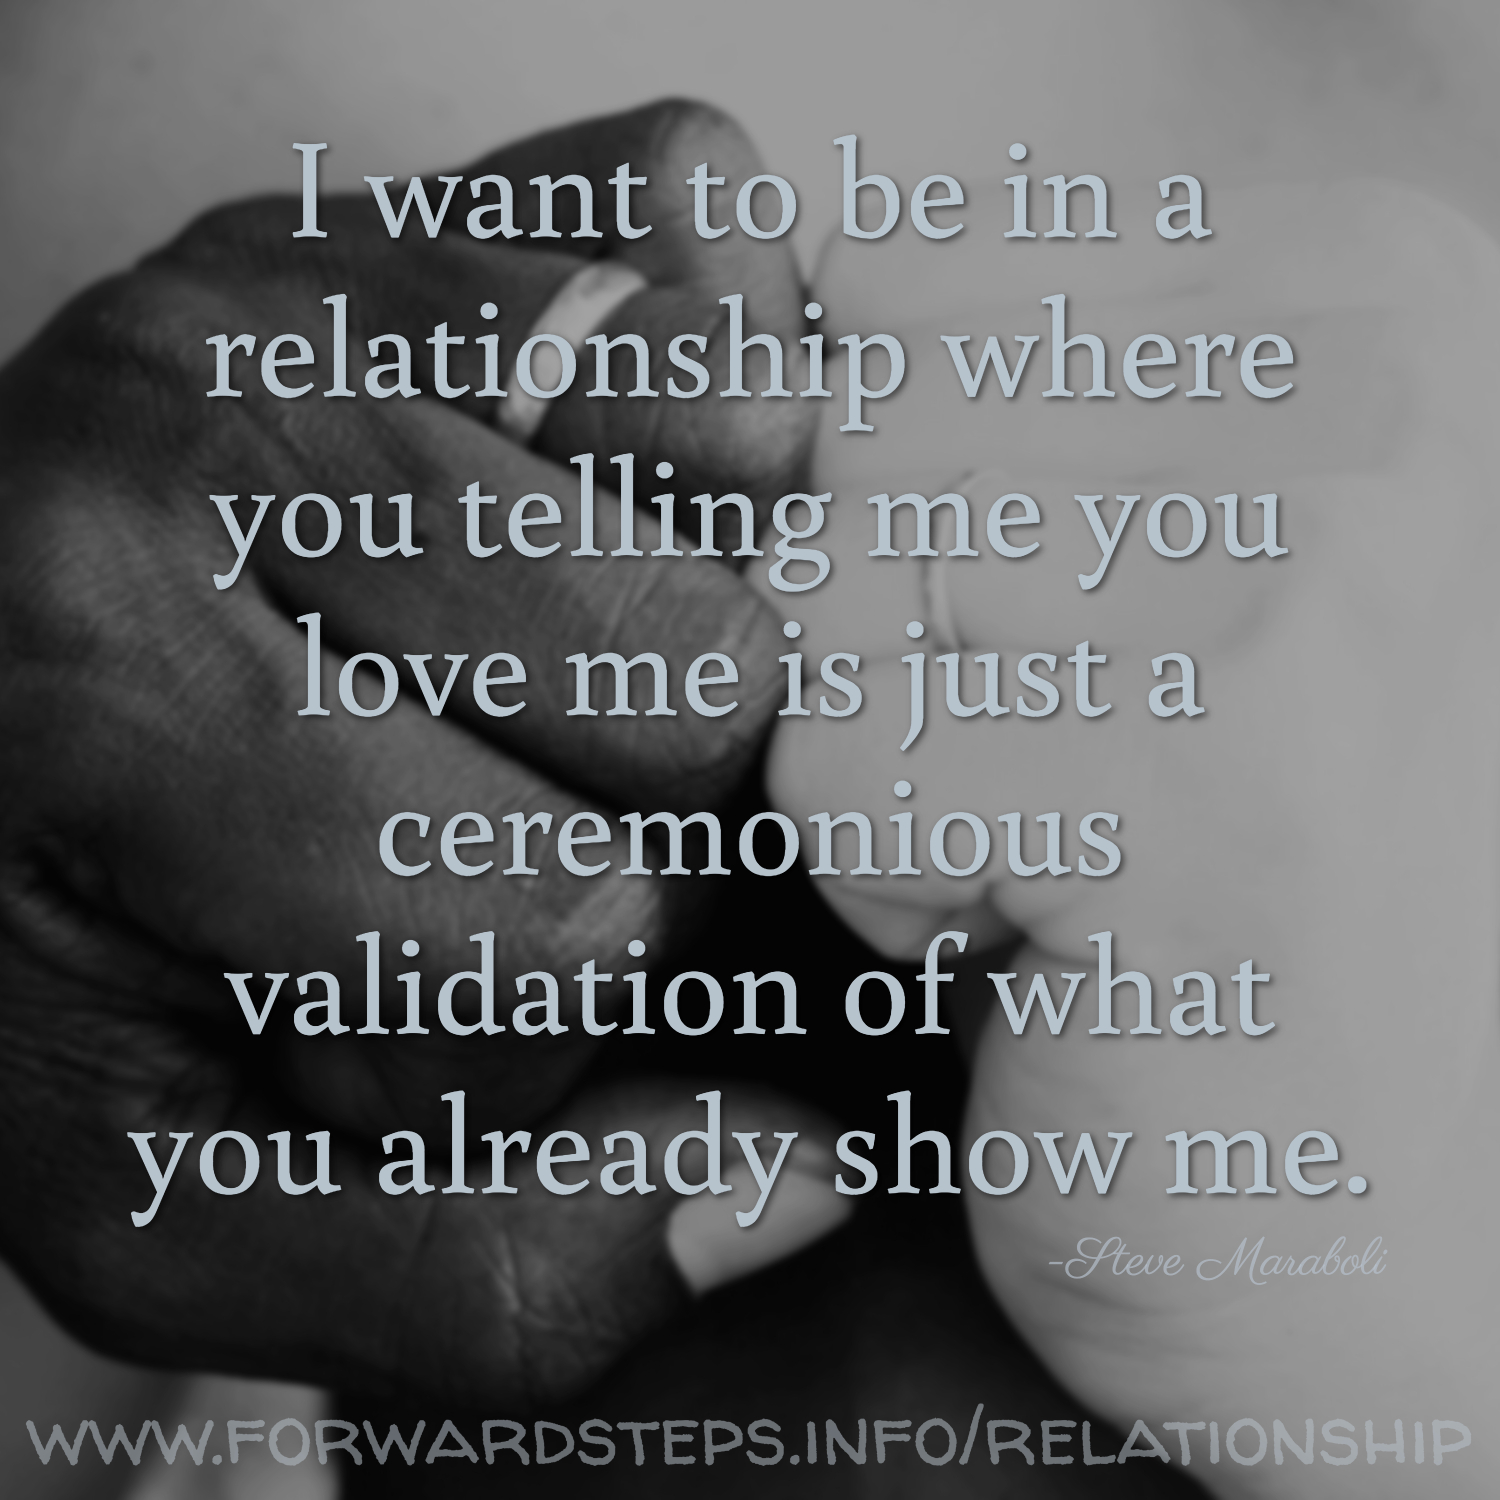 Rekindle Your Relationship article image 1